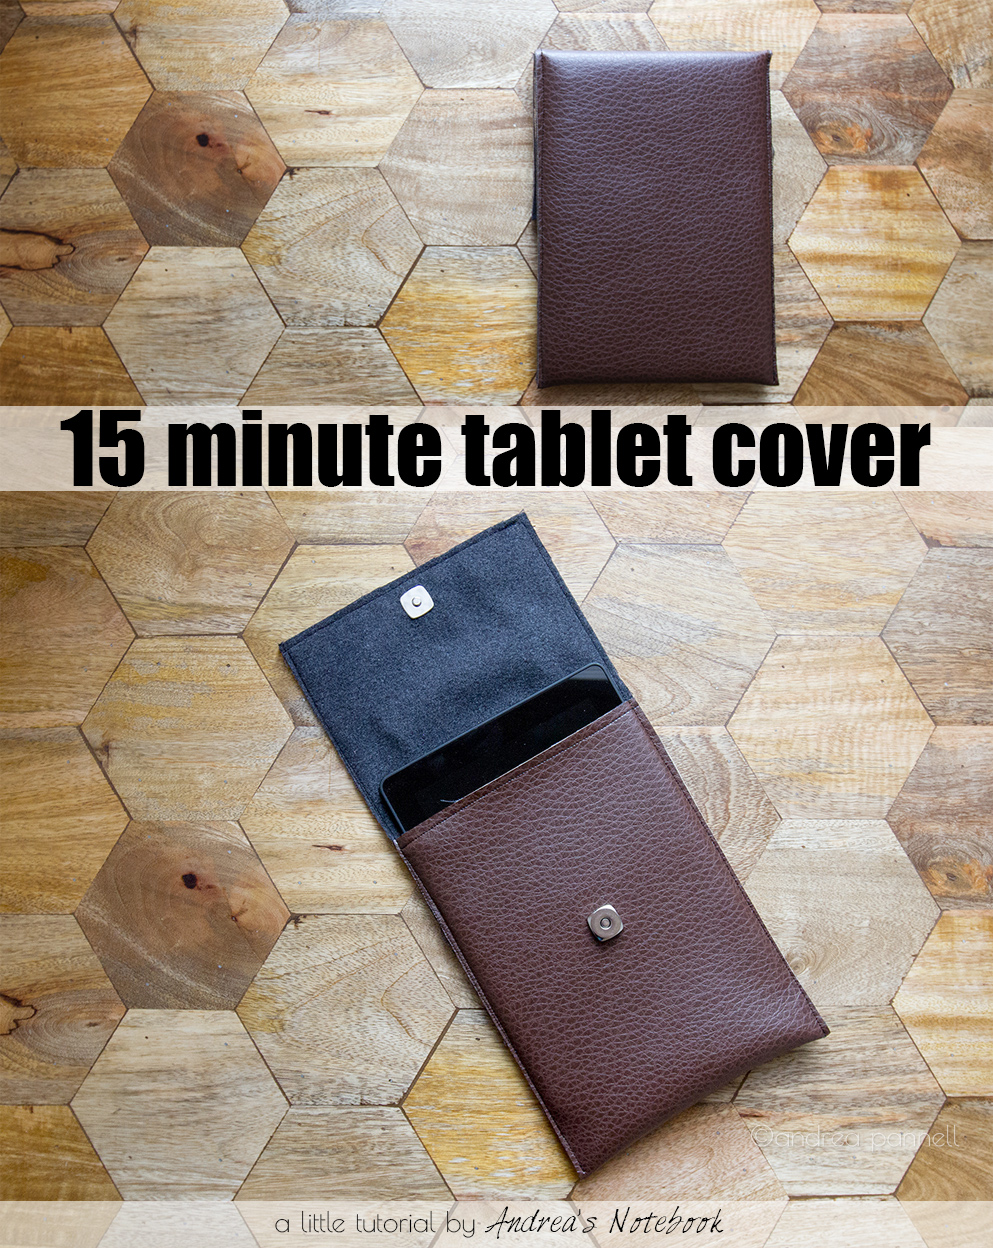 15 minute tablet cover tutorial